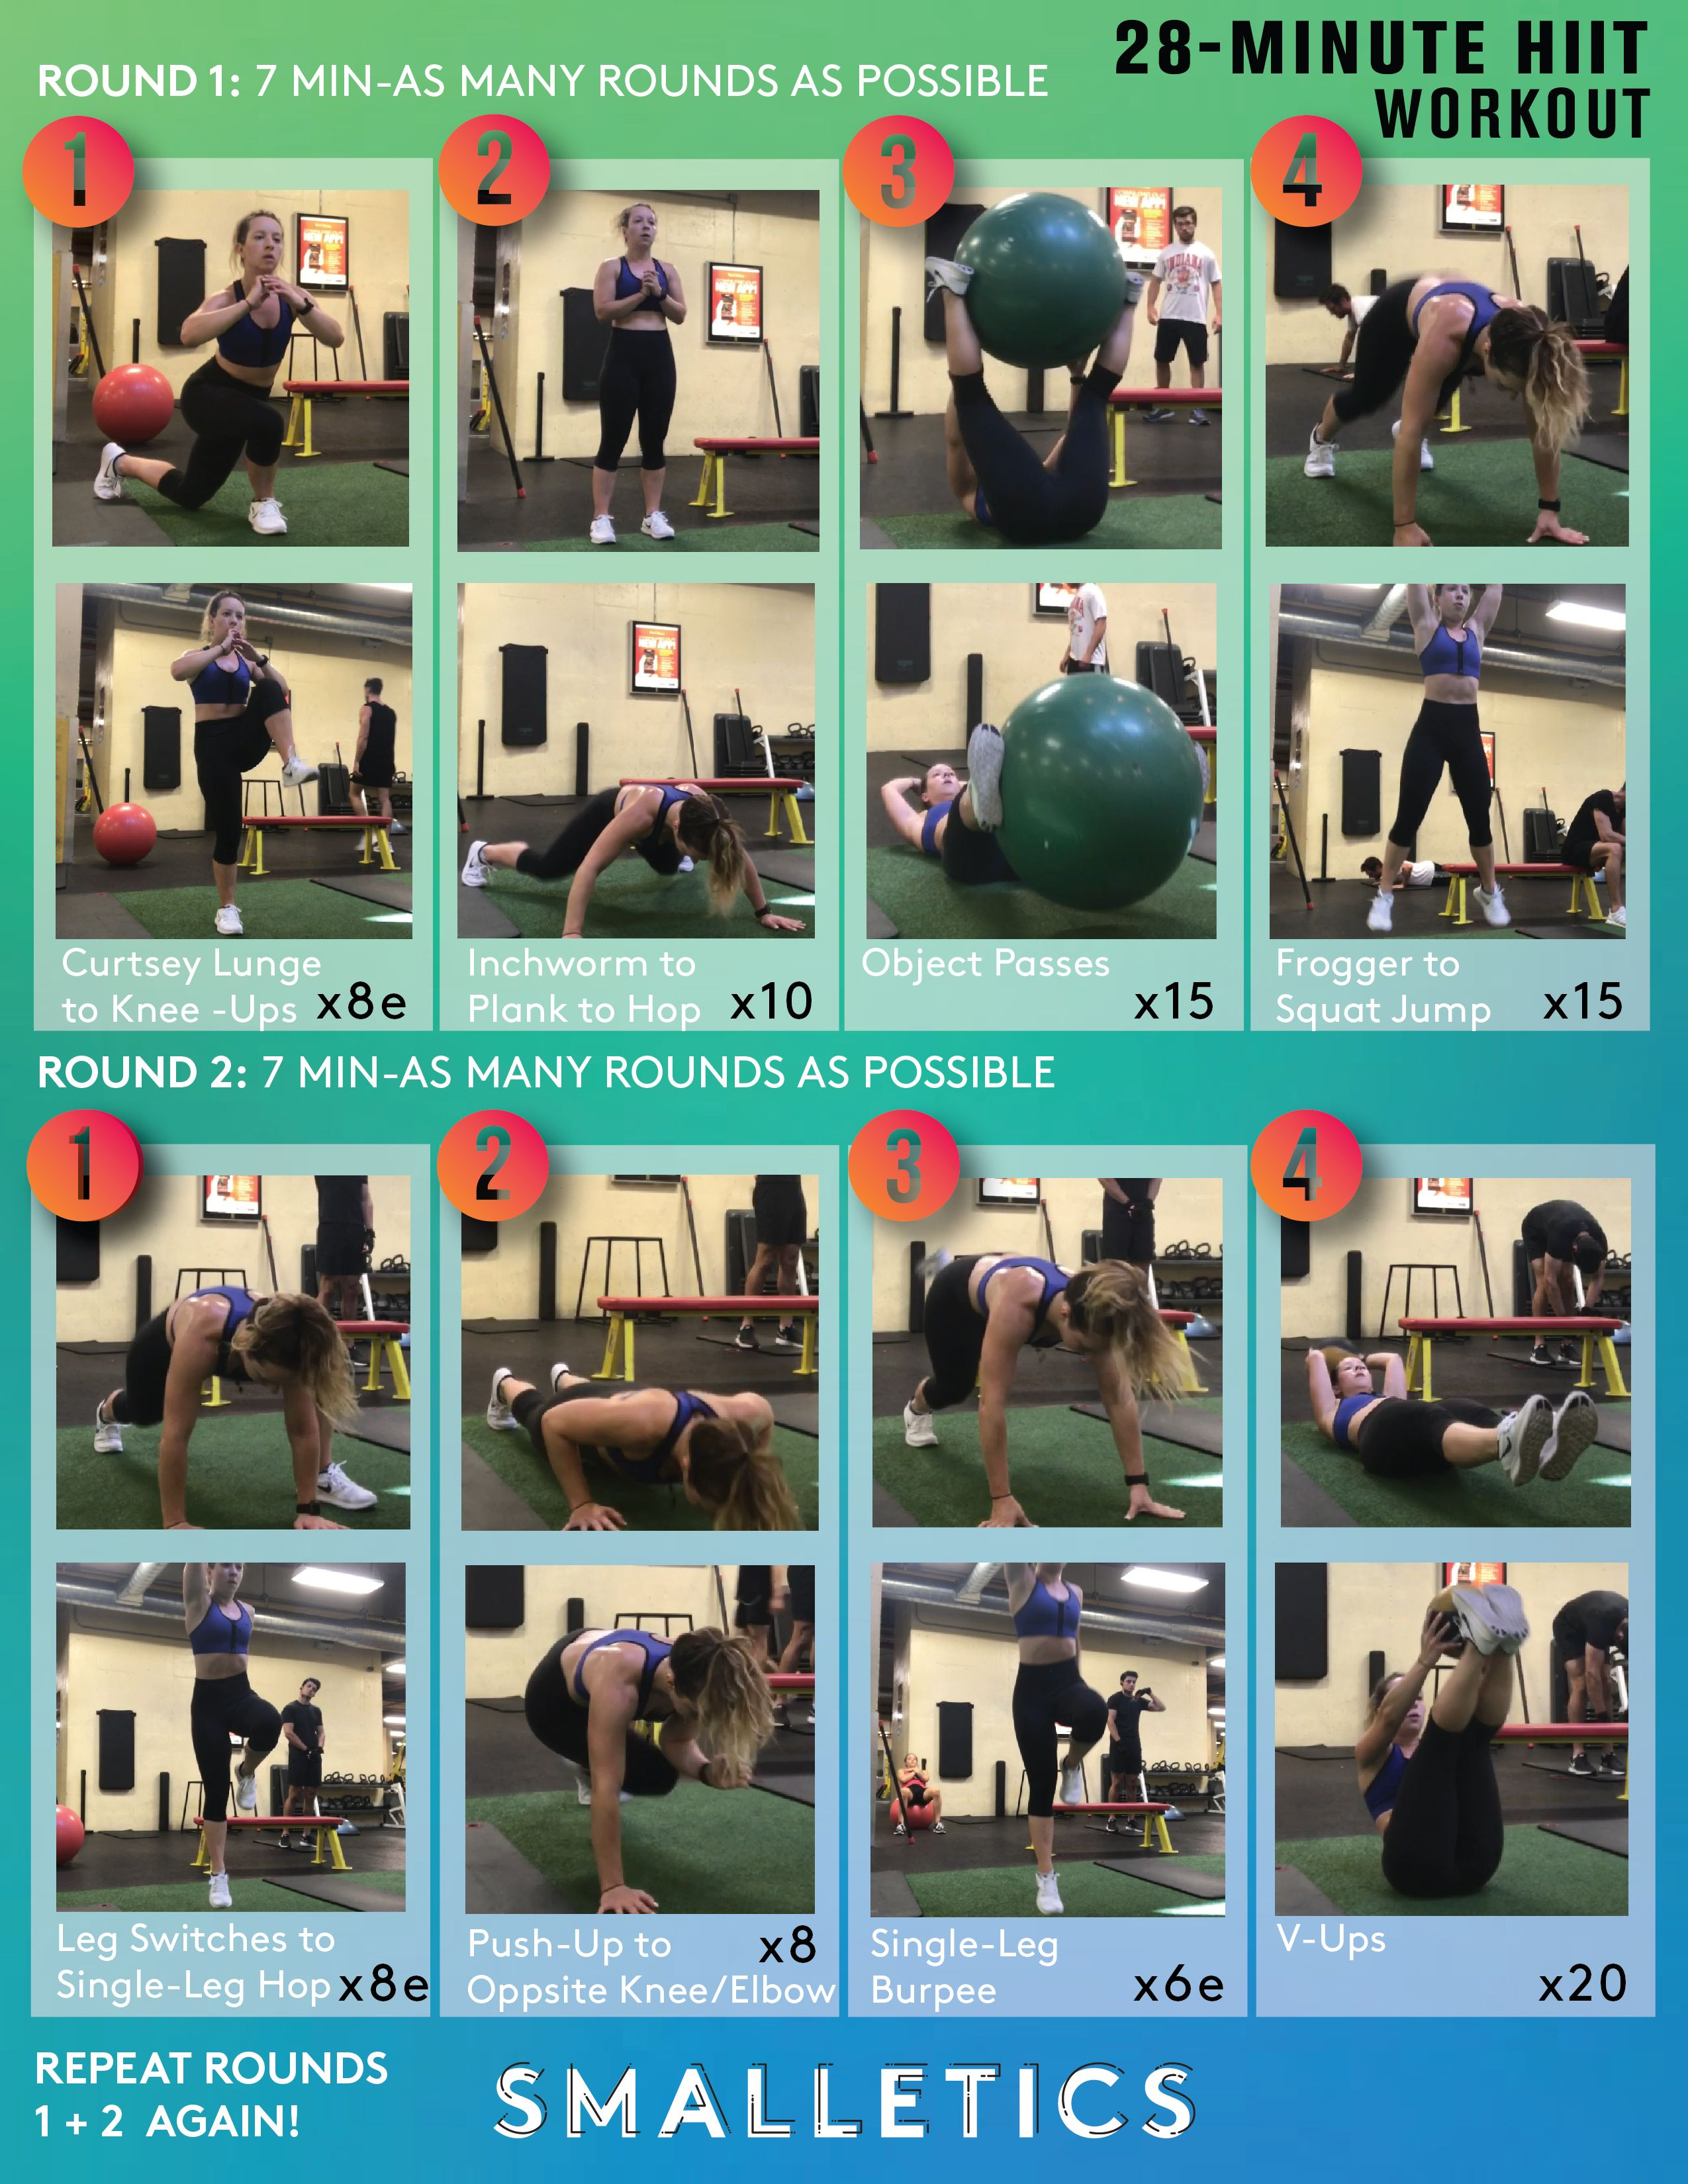 28 Min Fun And Creative At Home Vacation Workout No Gym Equipment Needed Click To See Videos Of The Exercises And Modifications As Well As Why Hiit Is